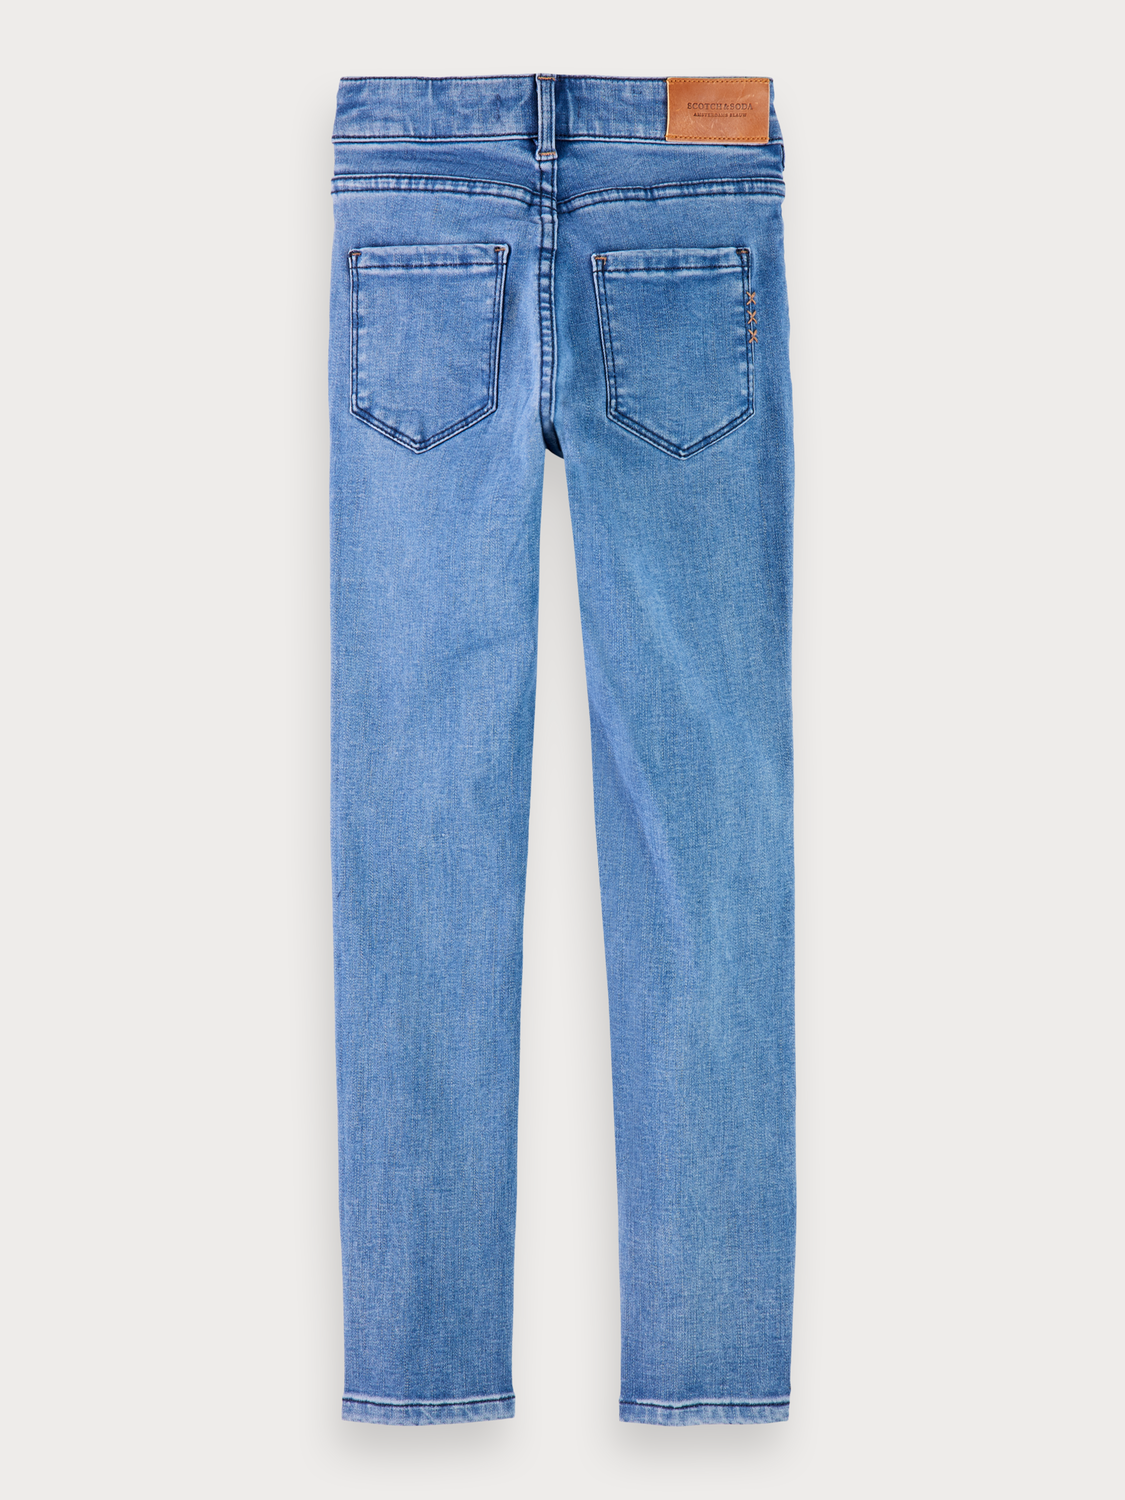 Flickor La Charmante - Moody Blue | Jeans med high-rise skinny fit